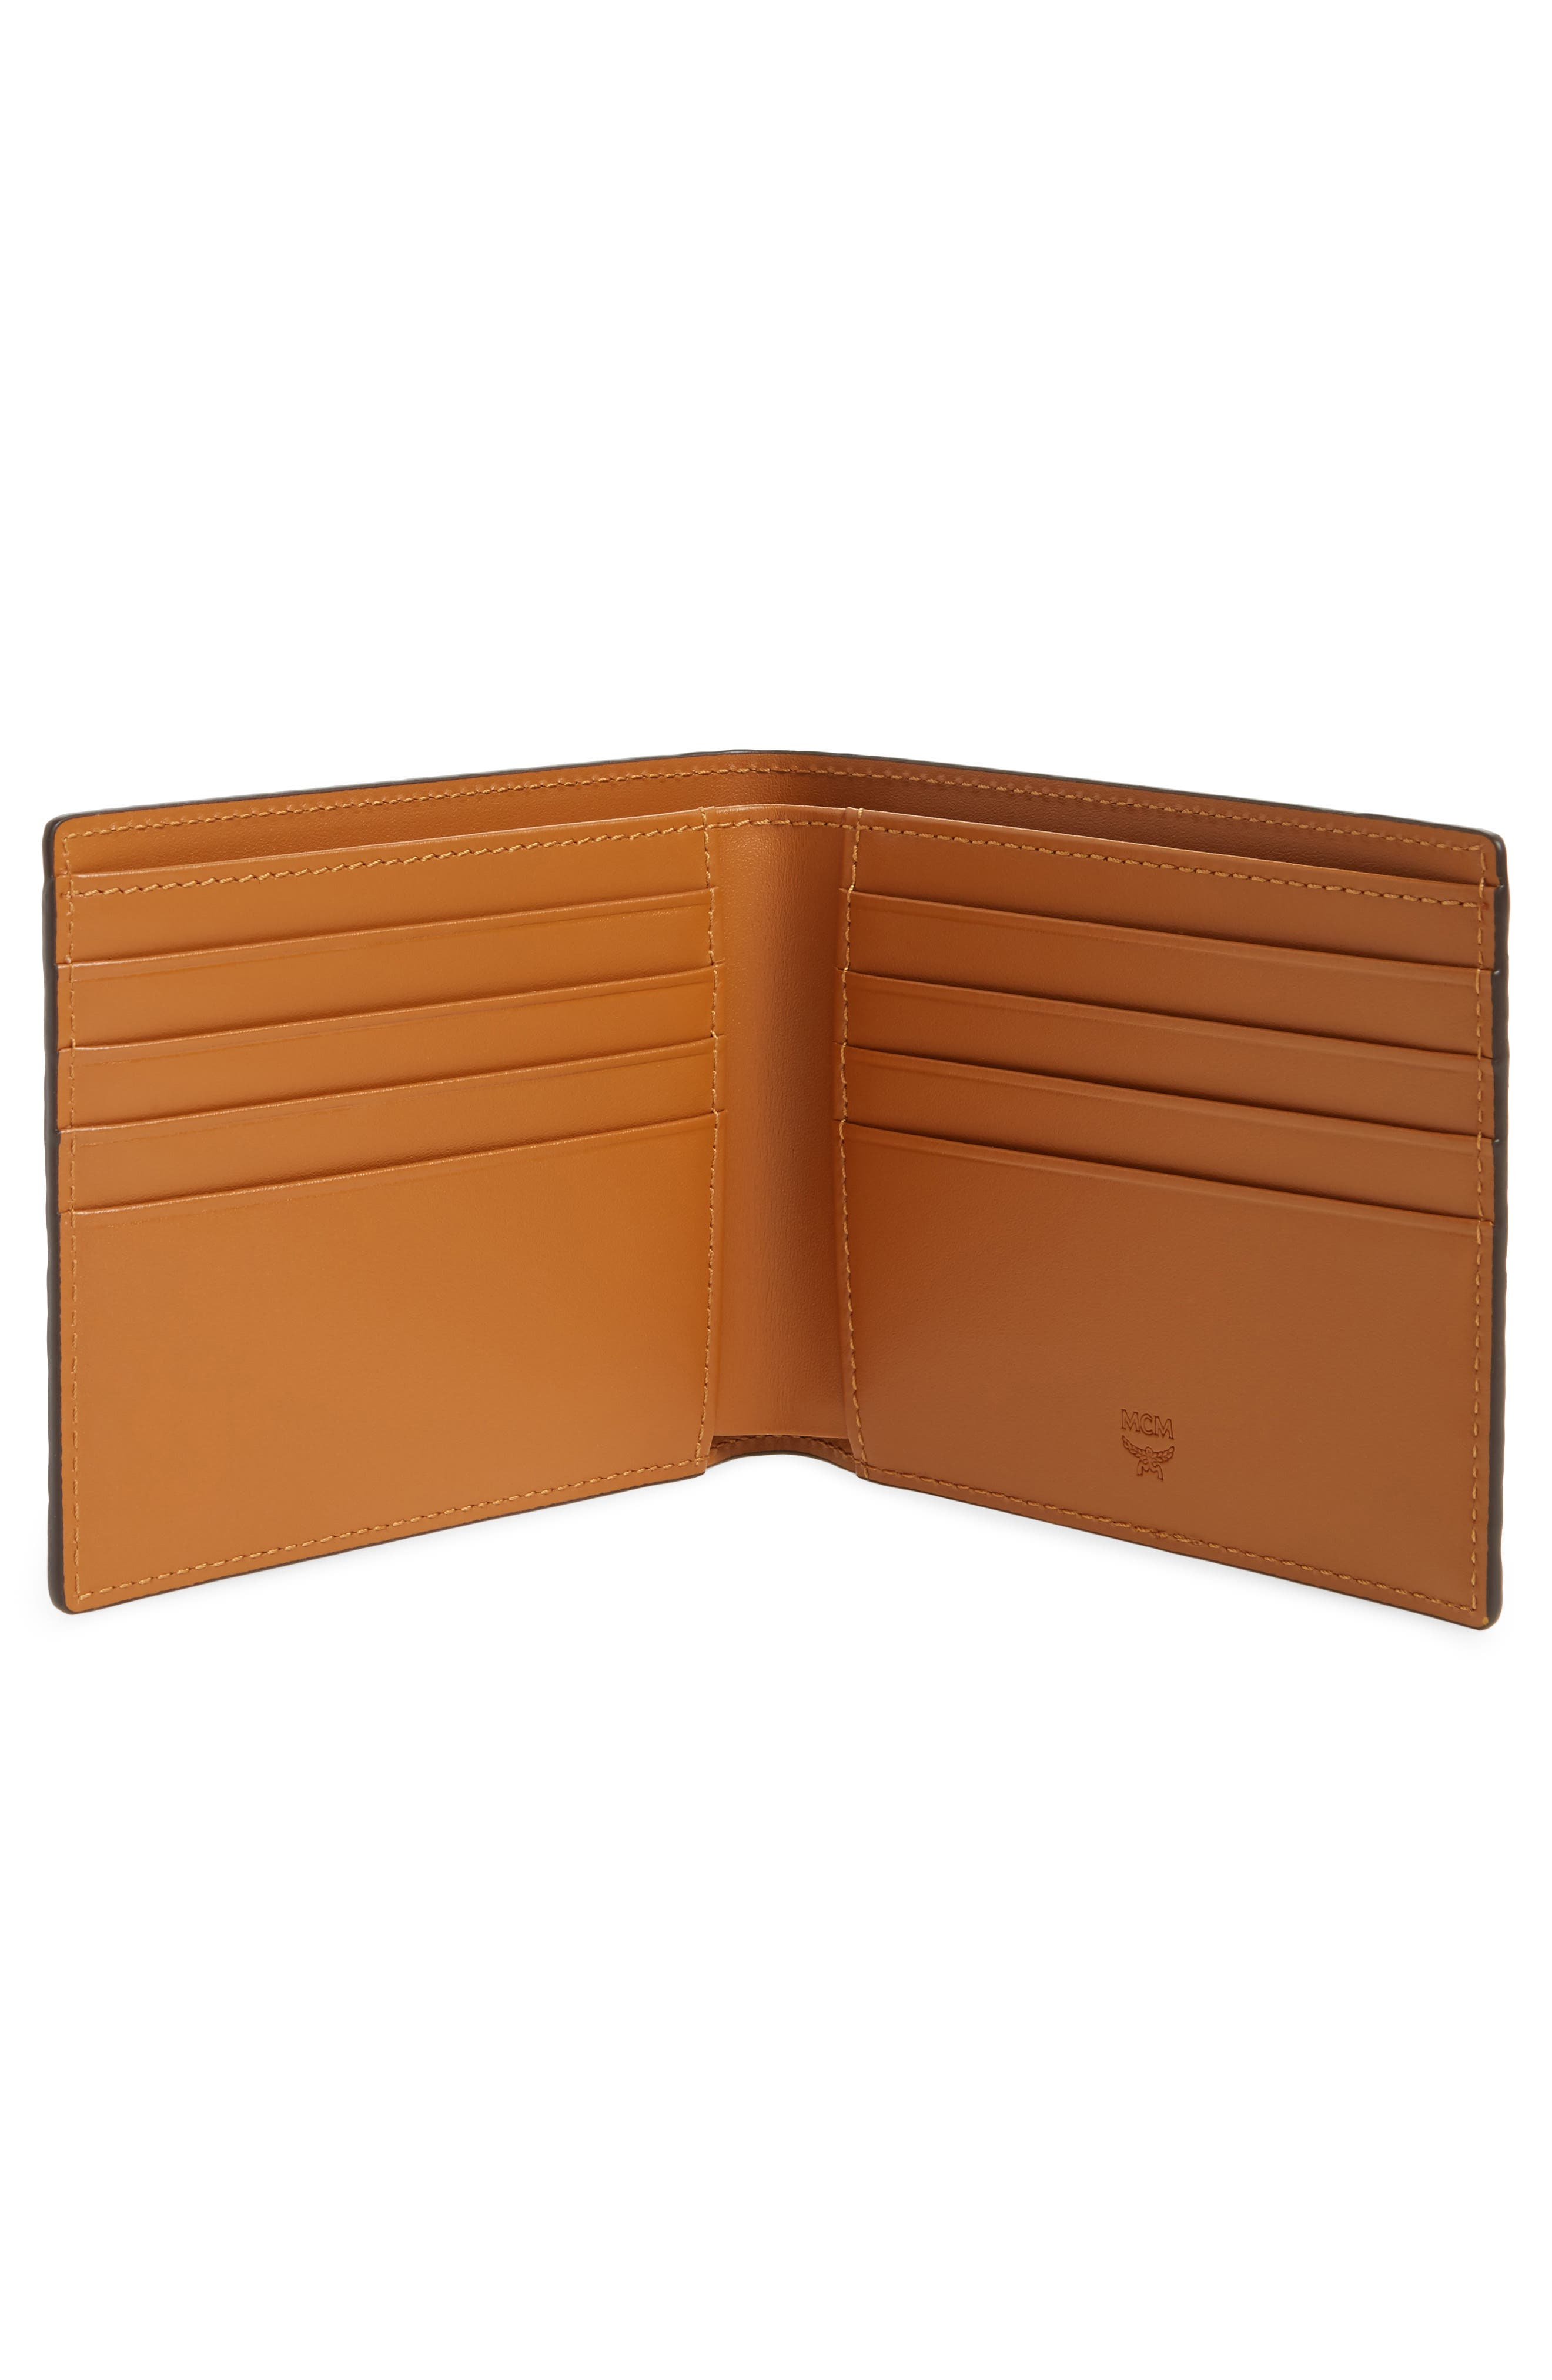 Logo Coated Canvas & Leather Wallet,                             Alternate thumbnail 2, color,                             Cognac